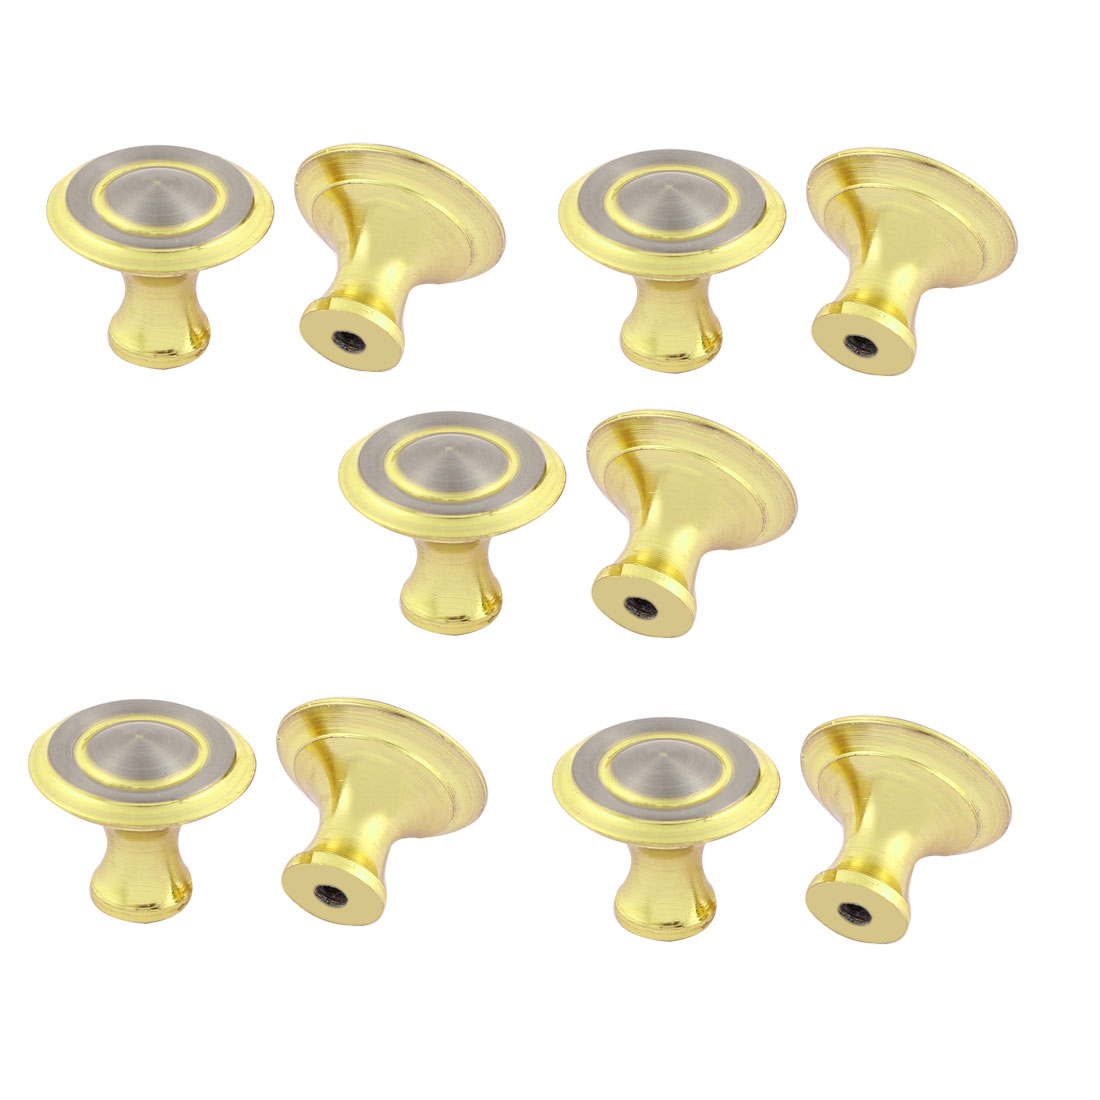 Cupboard Drawer Round Shaped Pull Knob Handle Grip Gold Tone 10pcs